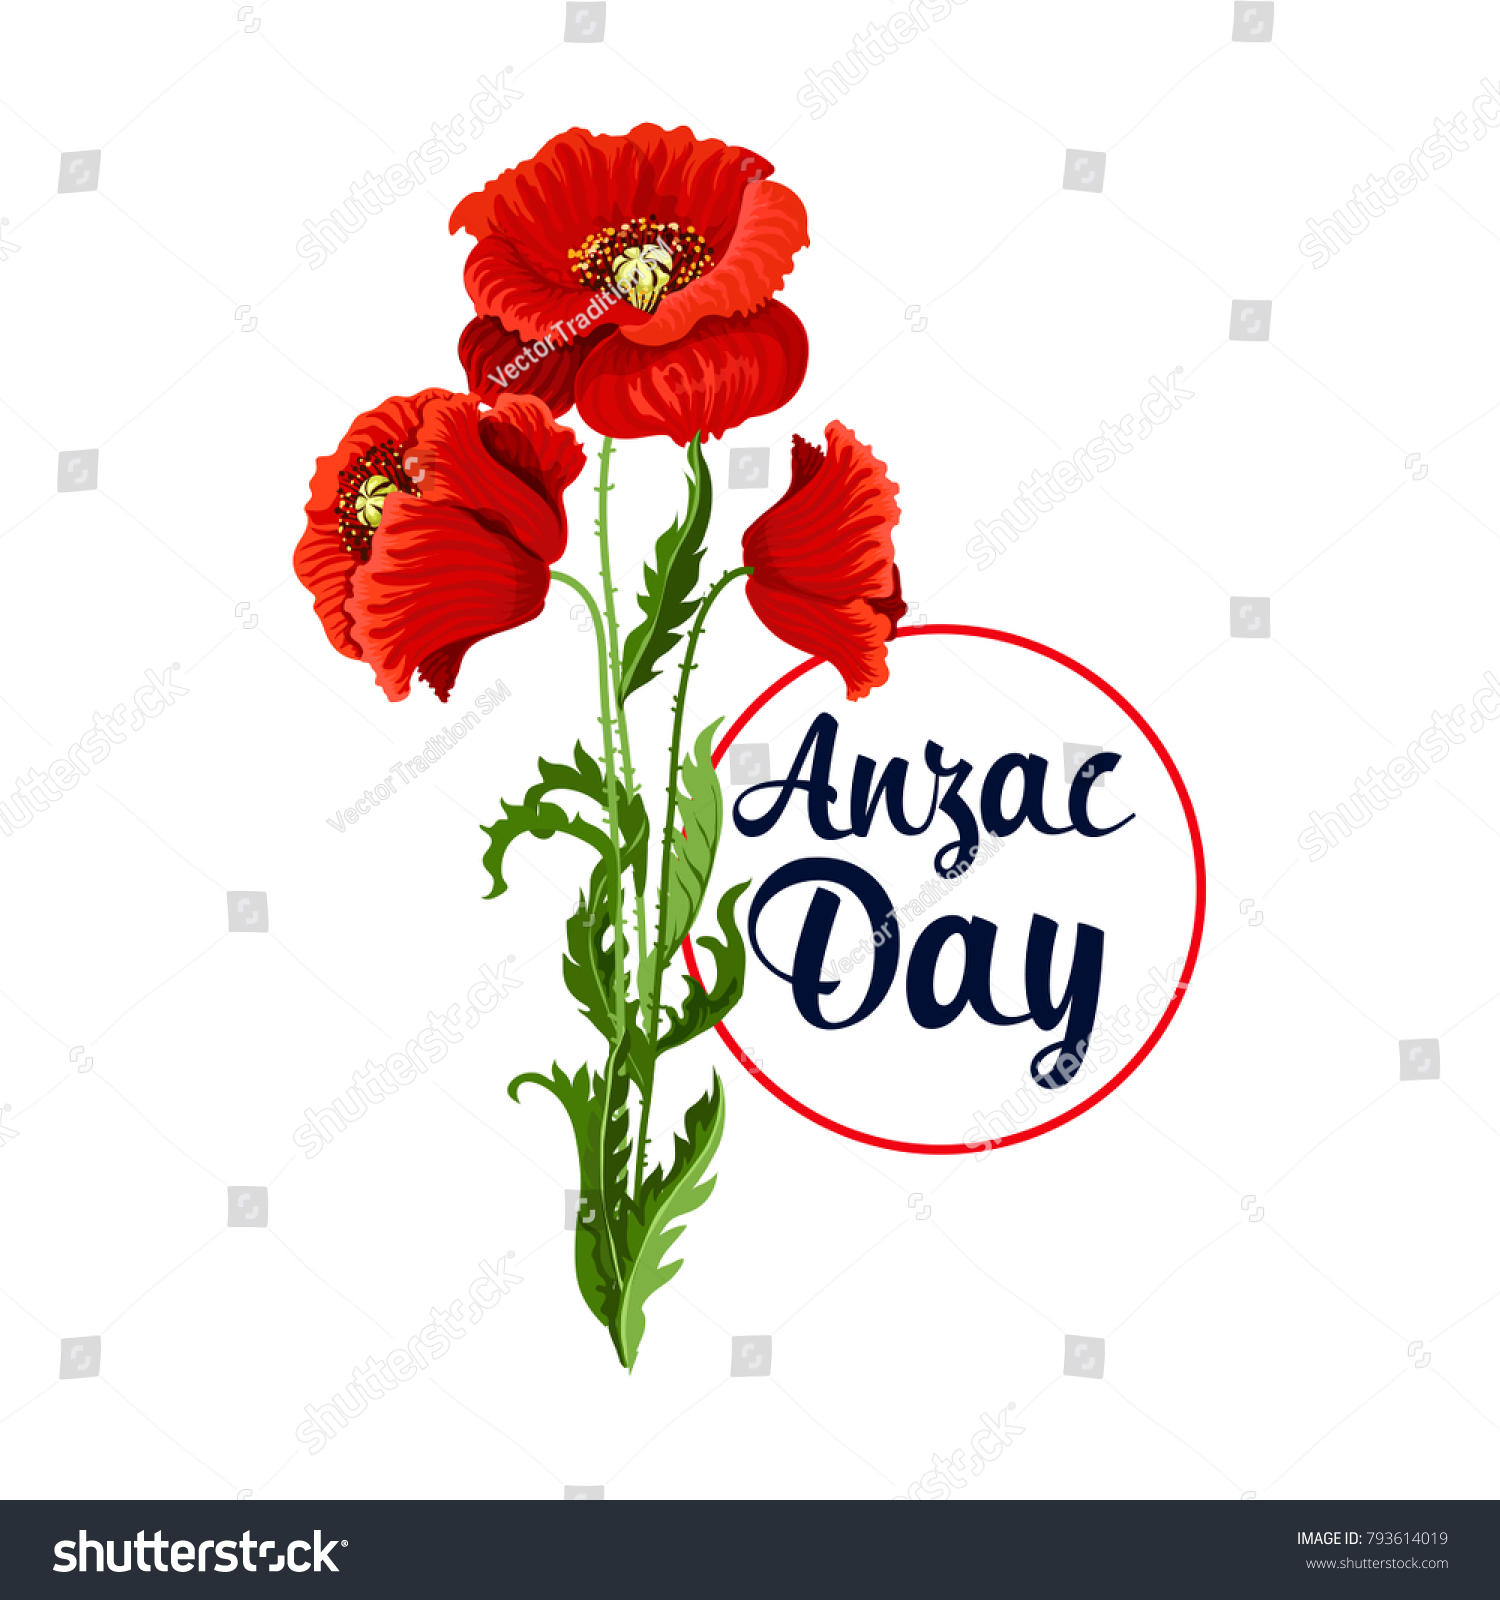 Anzac day poppy bunch icon war stock vector 793614019 shutterstock anzac day poppy bunch icon for war commemorative day of australia and new zealand soldiers and biocorpaavc Images